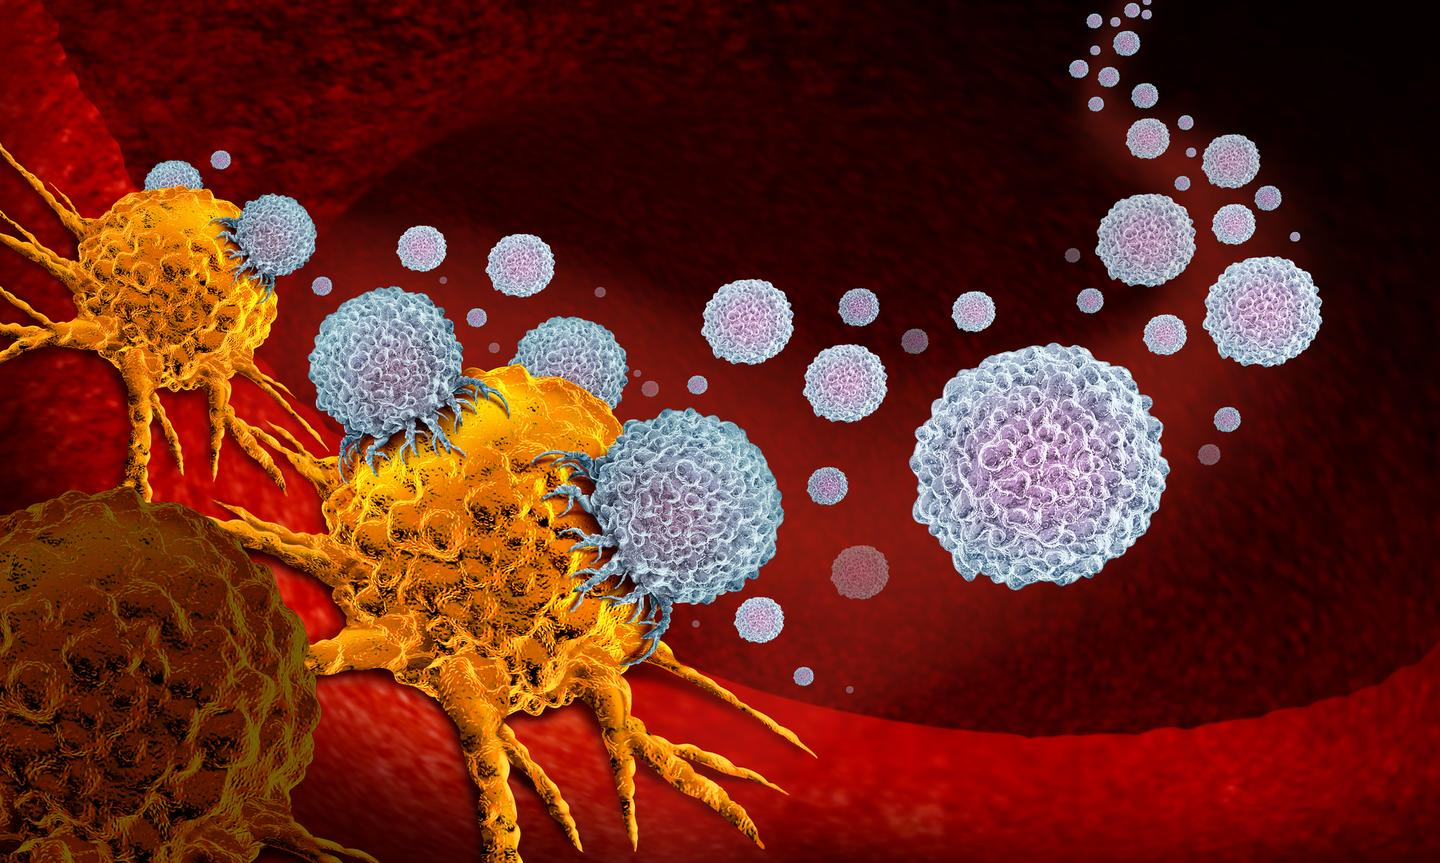 A new study has found a way to boost immunotherapy treatments against cancer